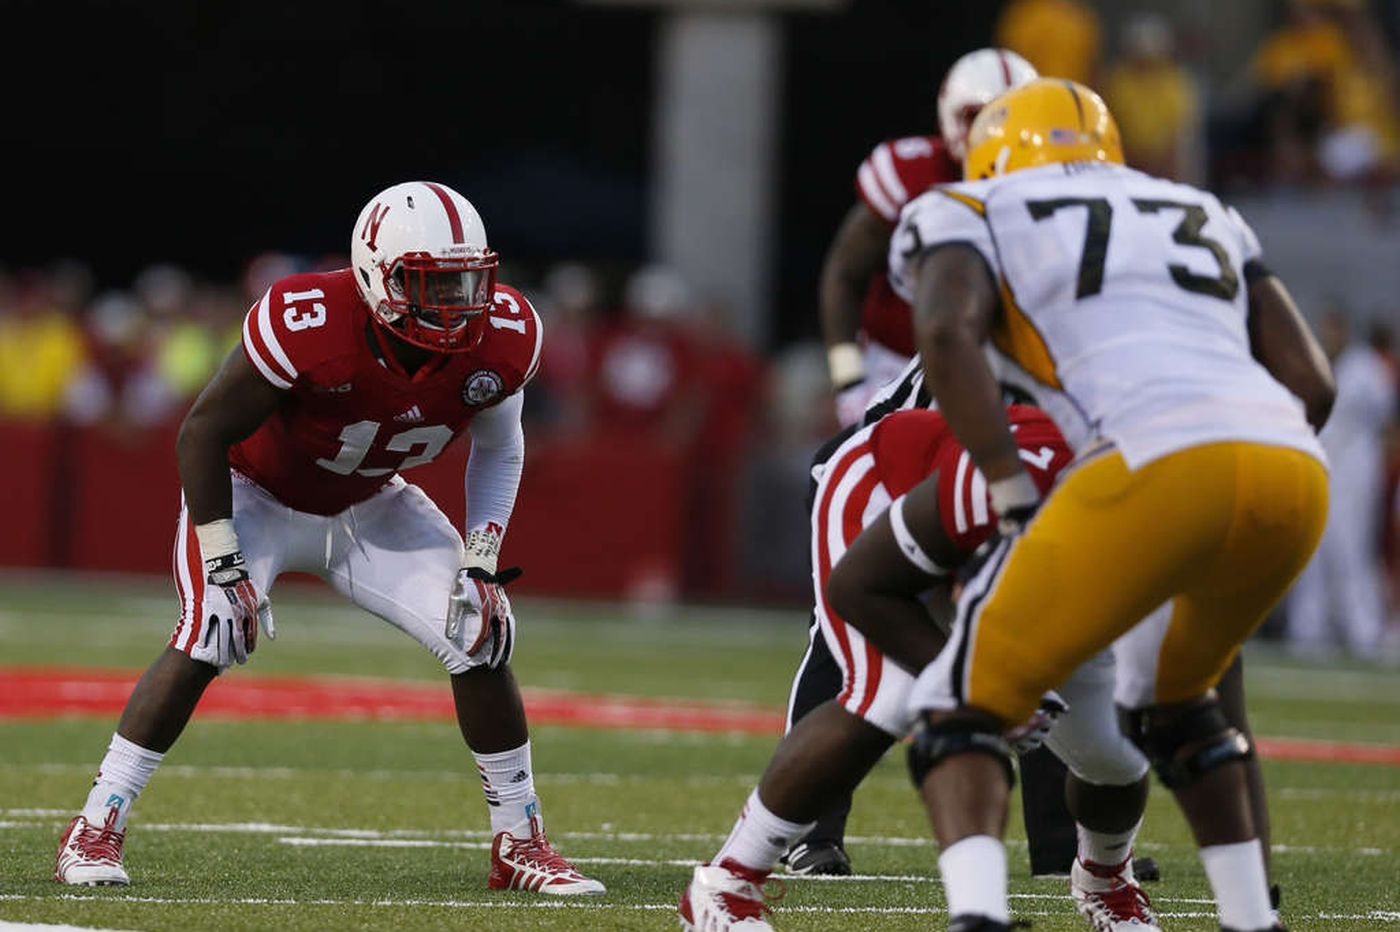 Anderson wants to put finishing touch on Nebraska career